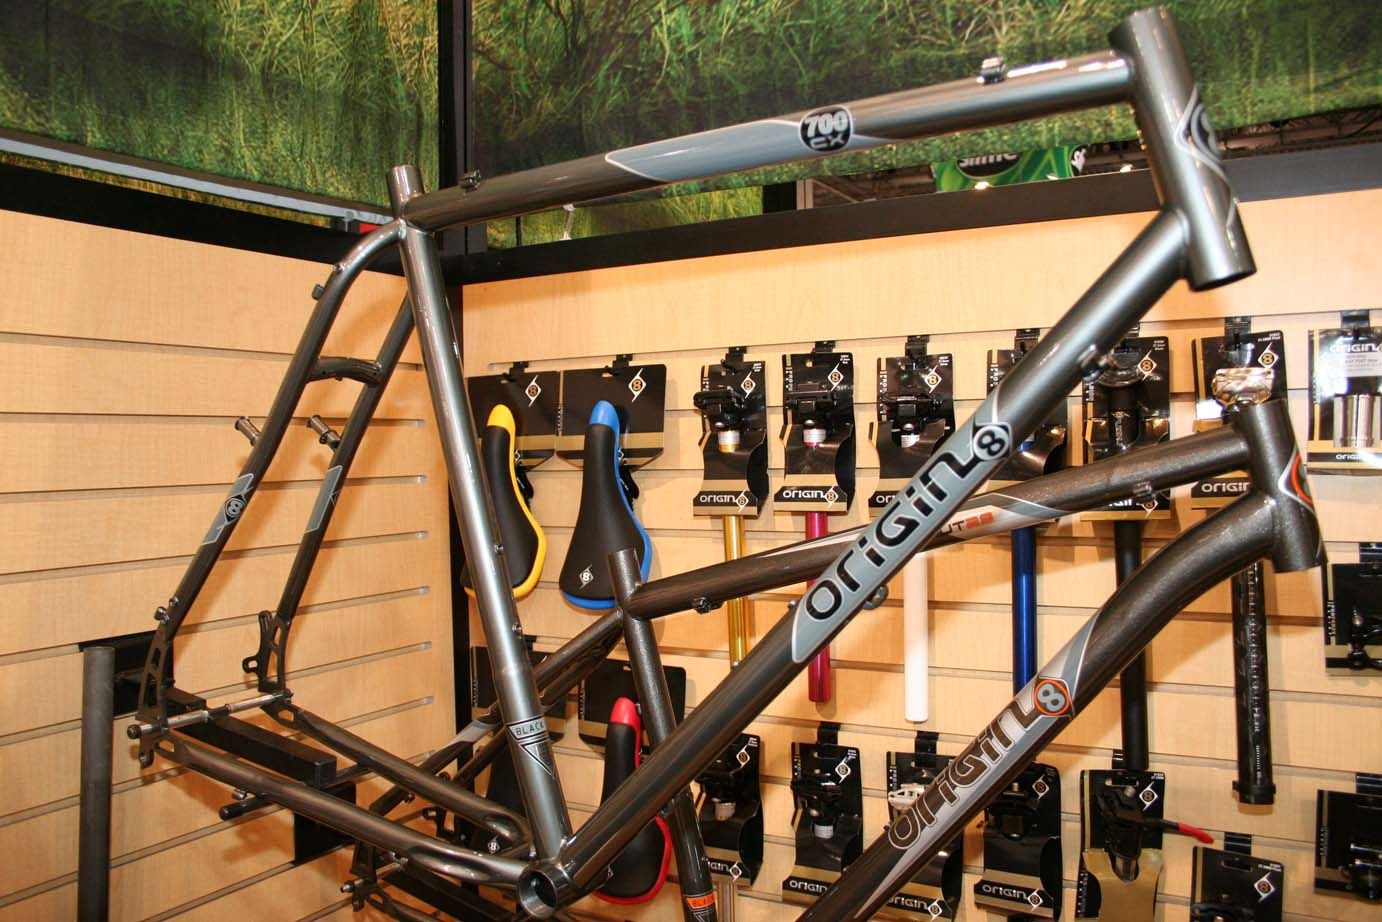 Origin8's 700CX Cyclocross Monster Cross Frameset